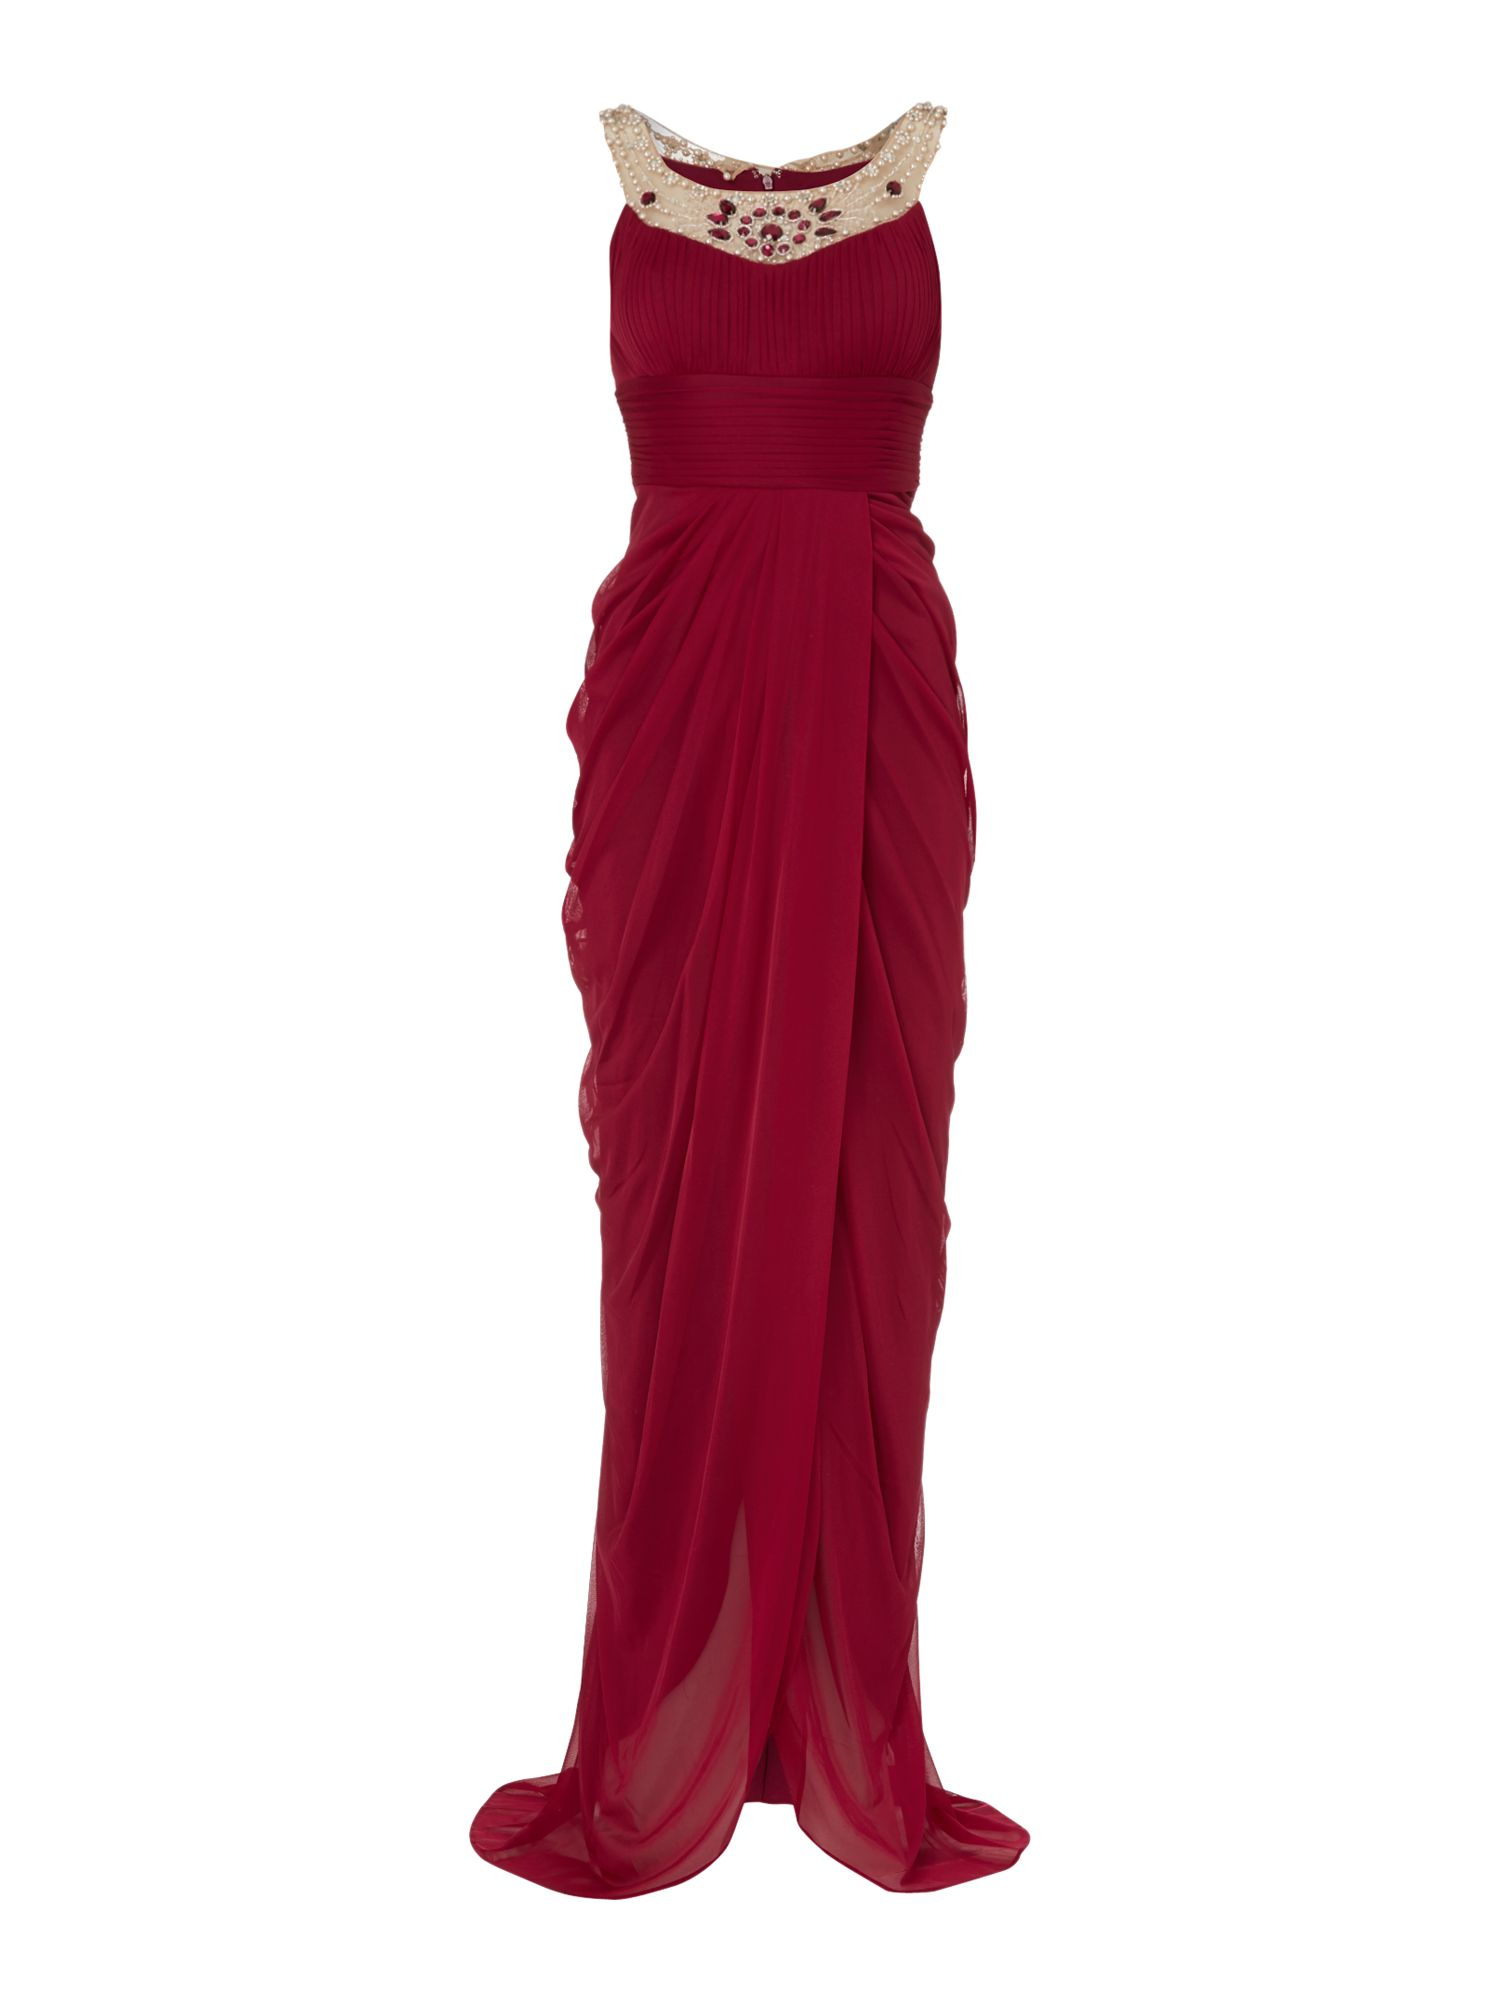 Embelished neck full length gown